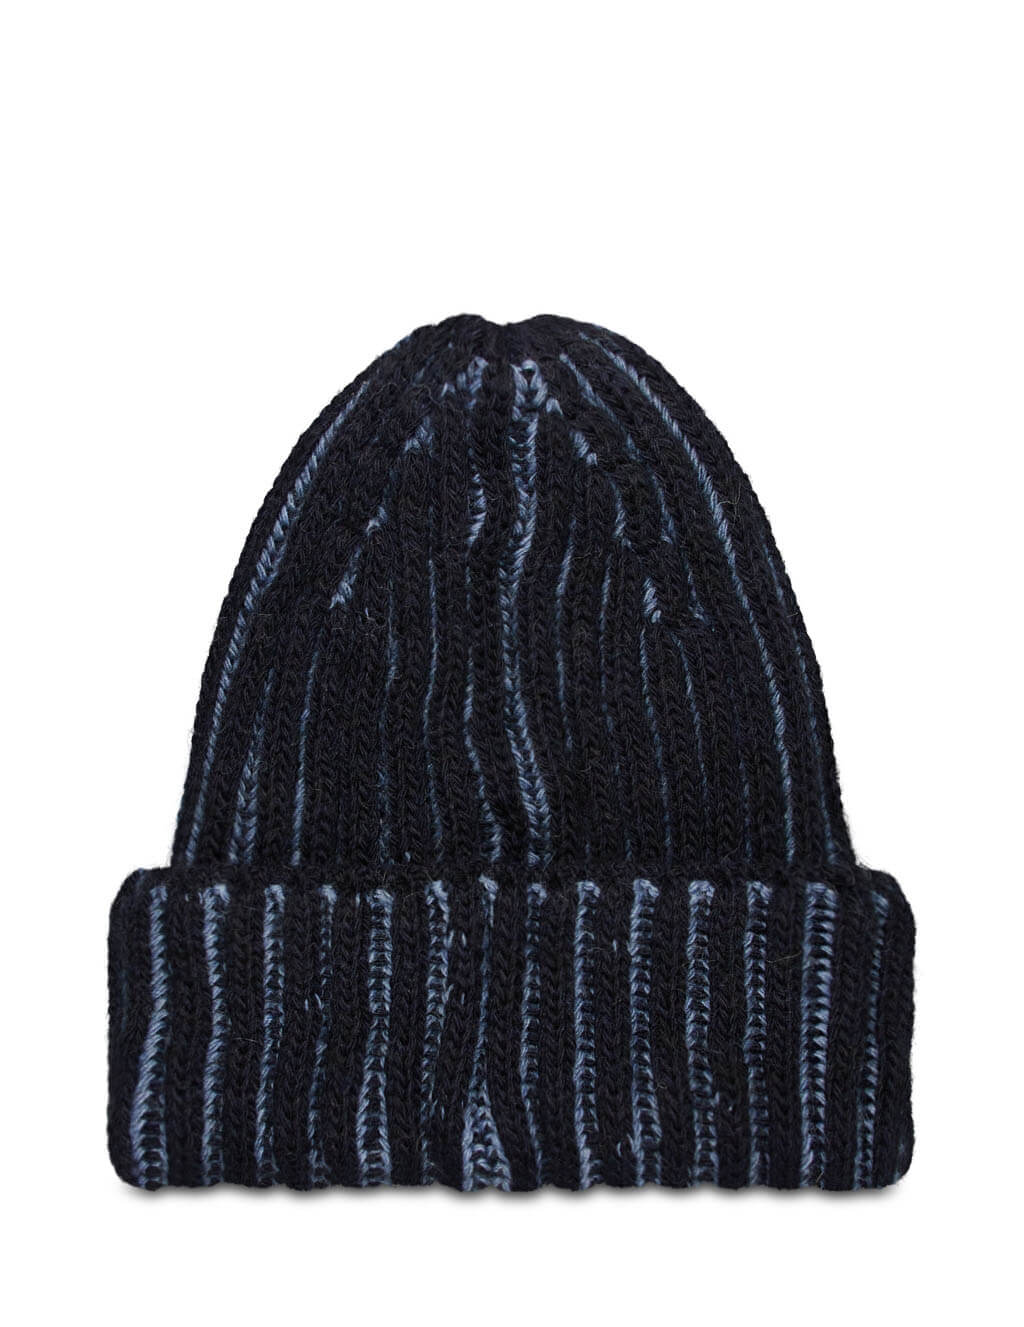 Men's Emporio Armani Ribbed Beanie in Blue - 6270120A51200134